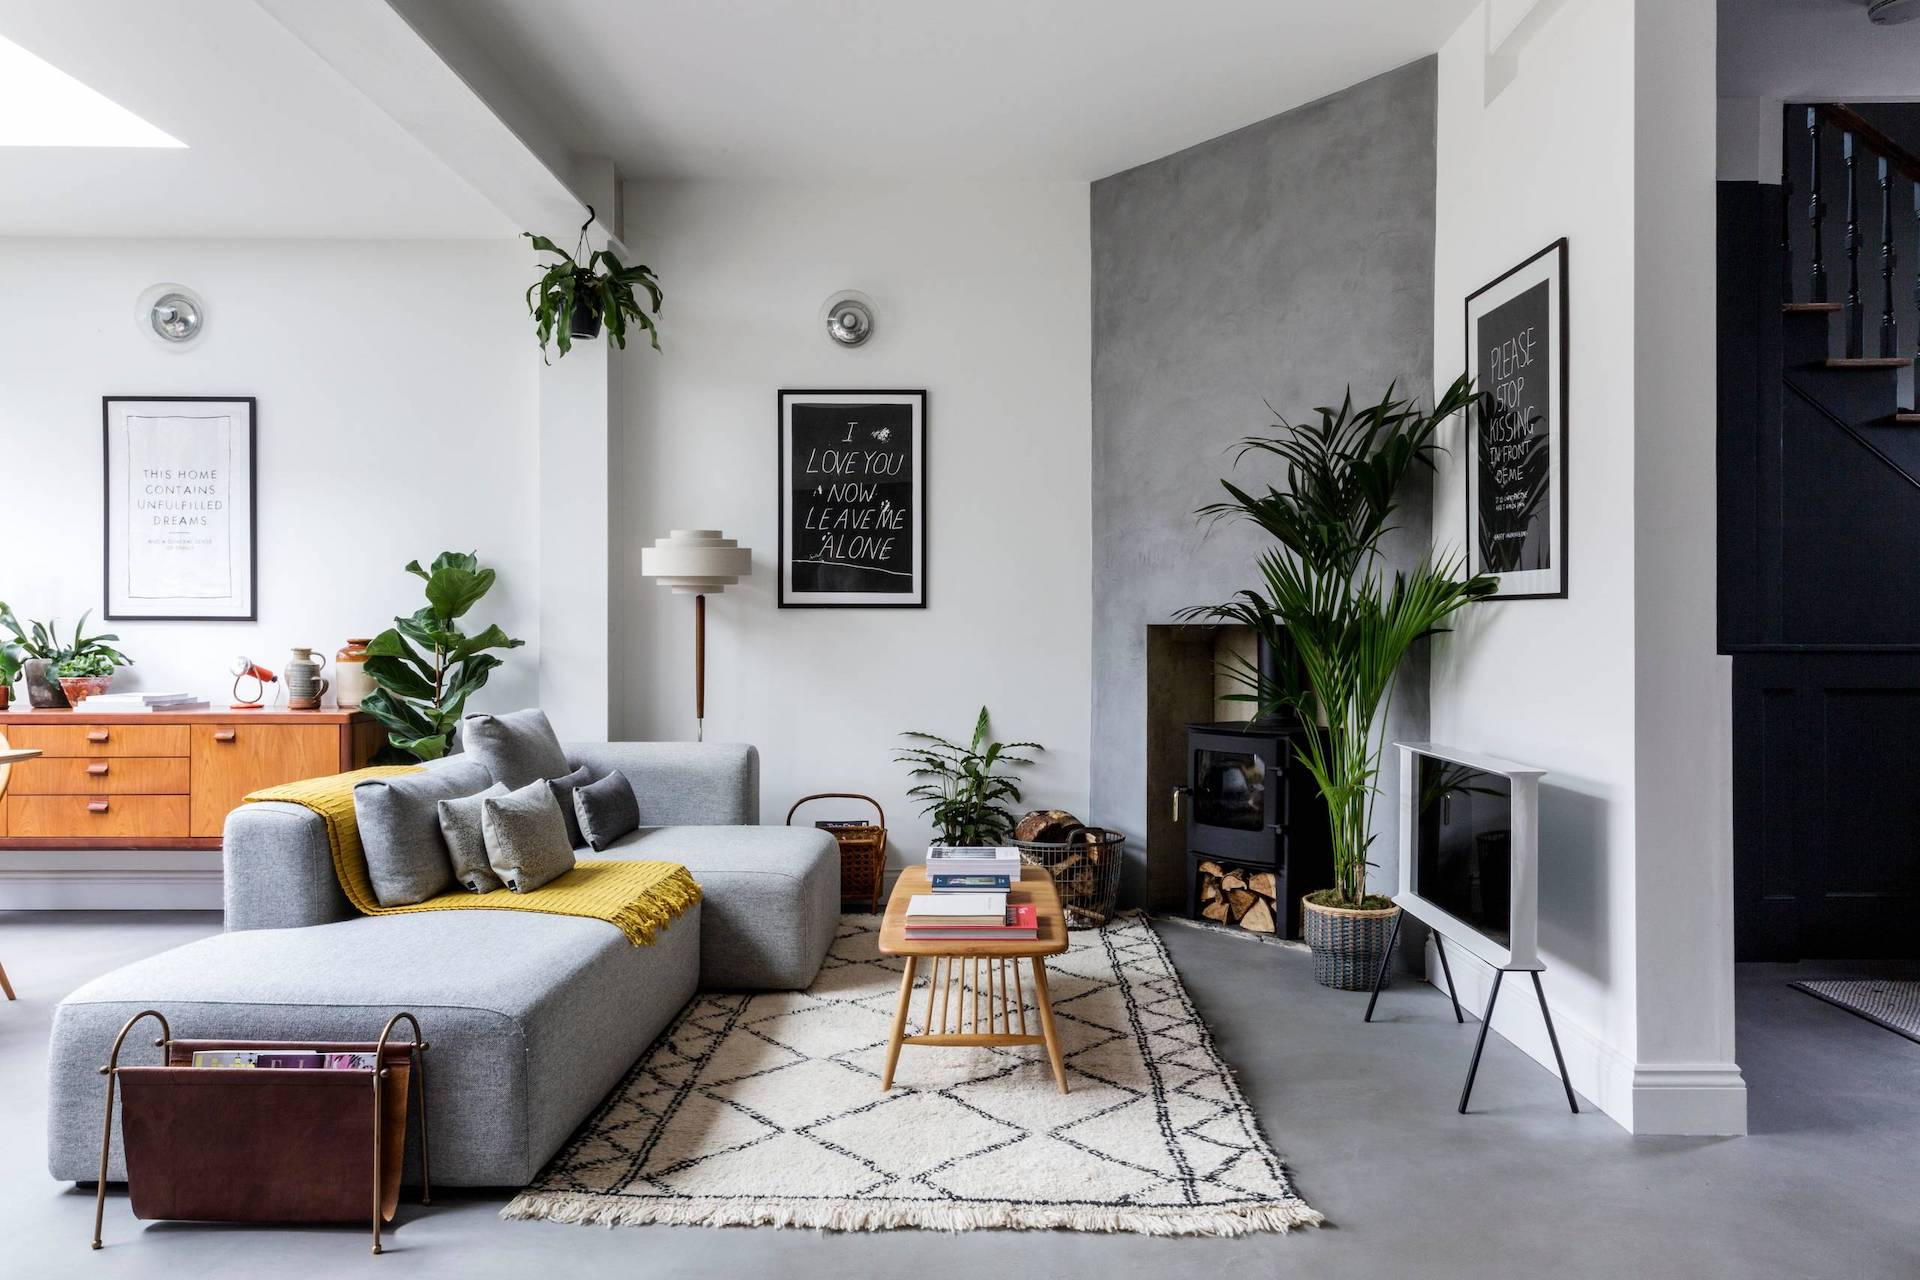 A well-balanced mix of modern wood and gray hue decor in a warm and inviting Scandinavian space